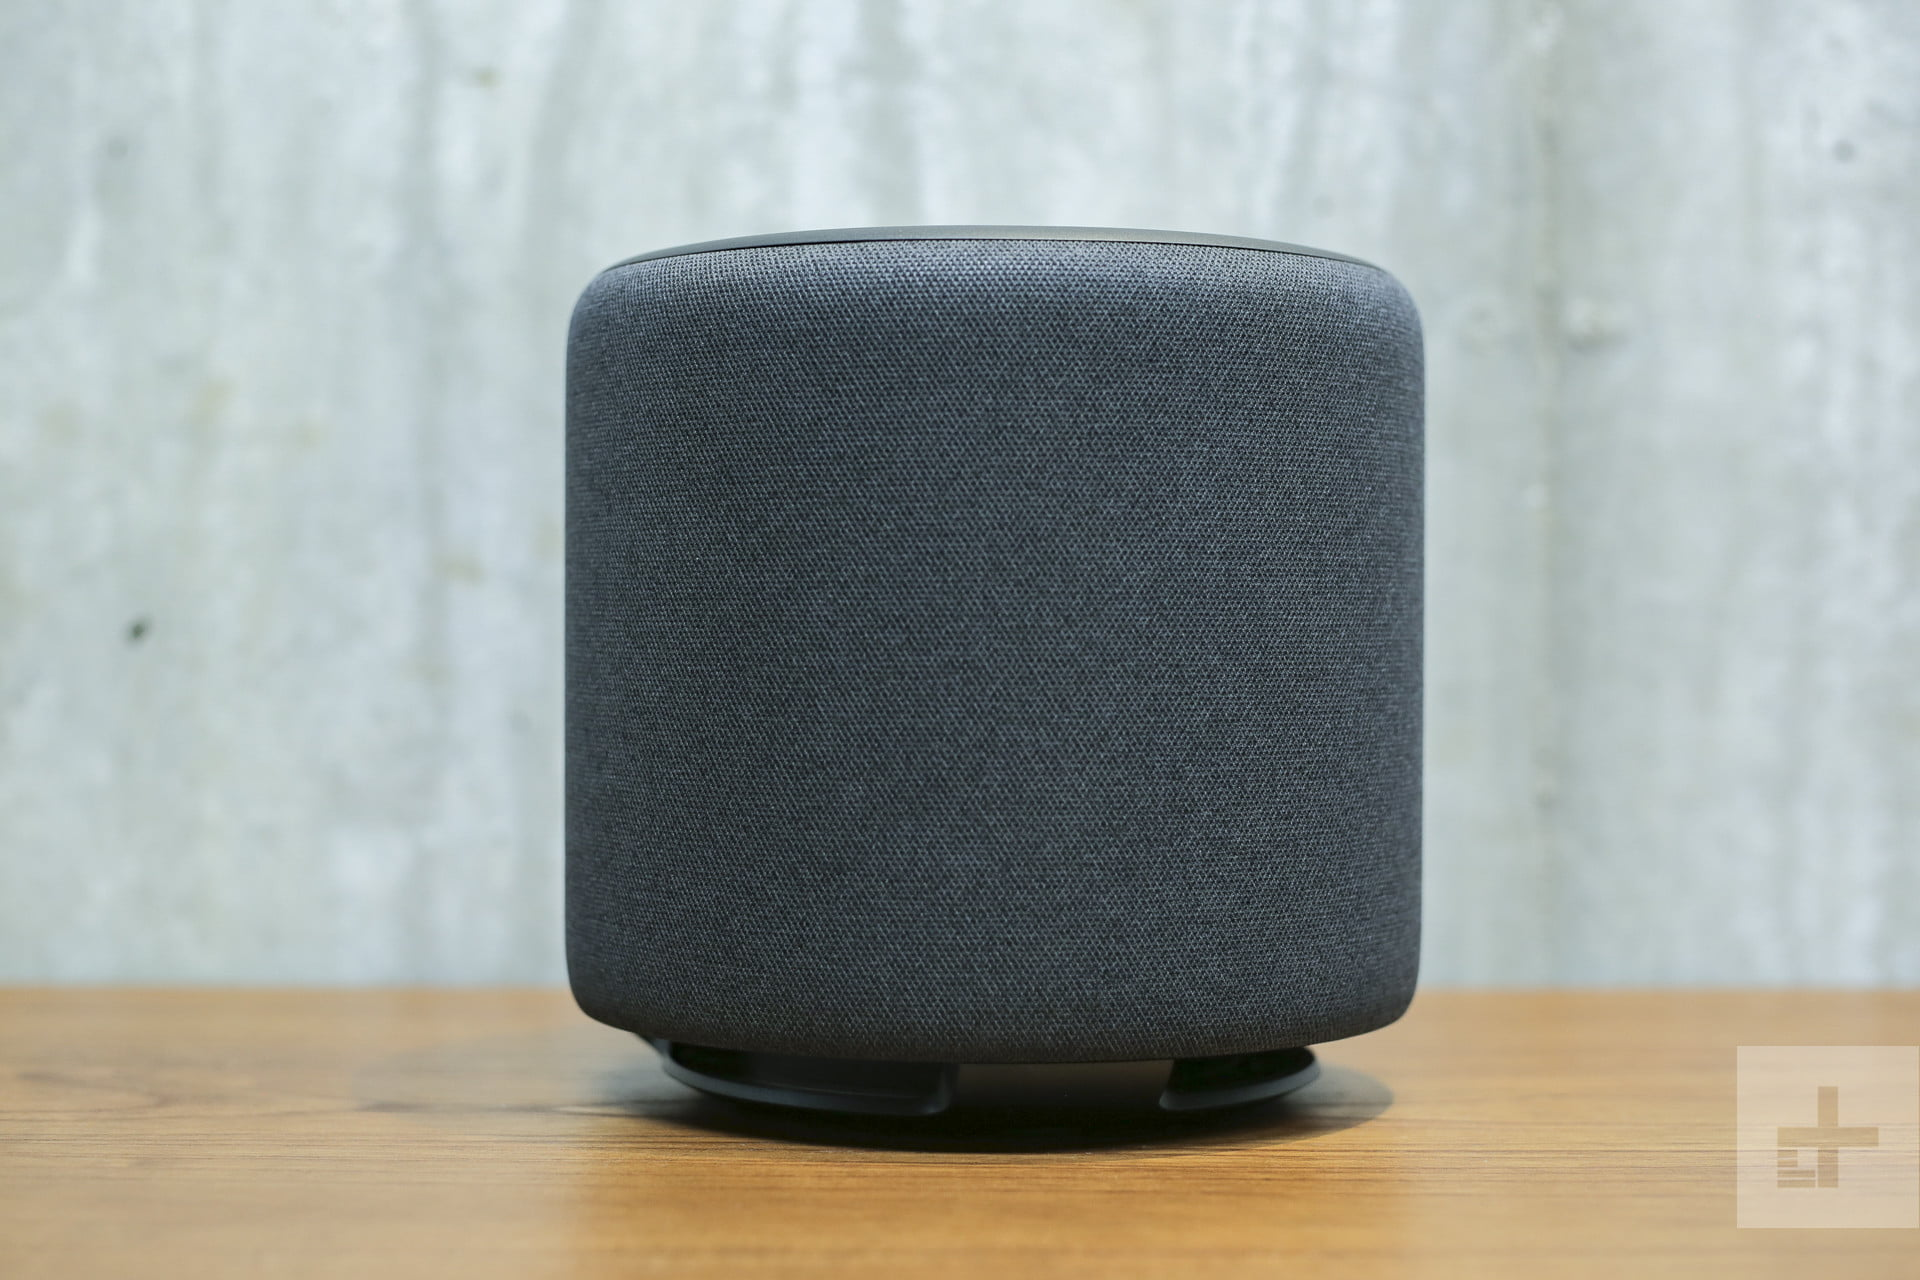 With the thump of an Echo Sub, Alexa goes from an assistant to a DJ